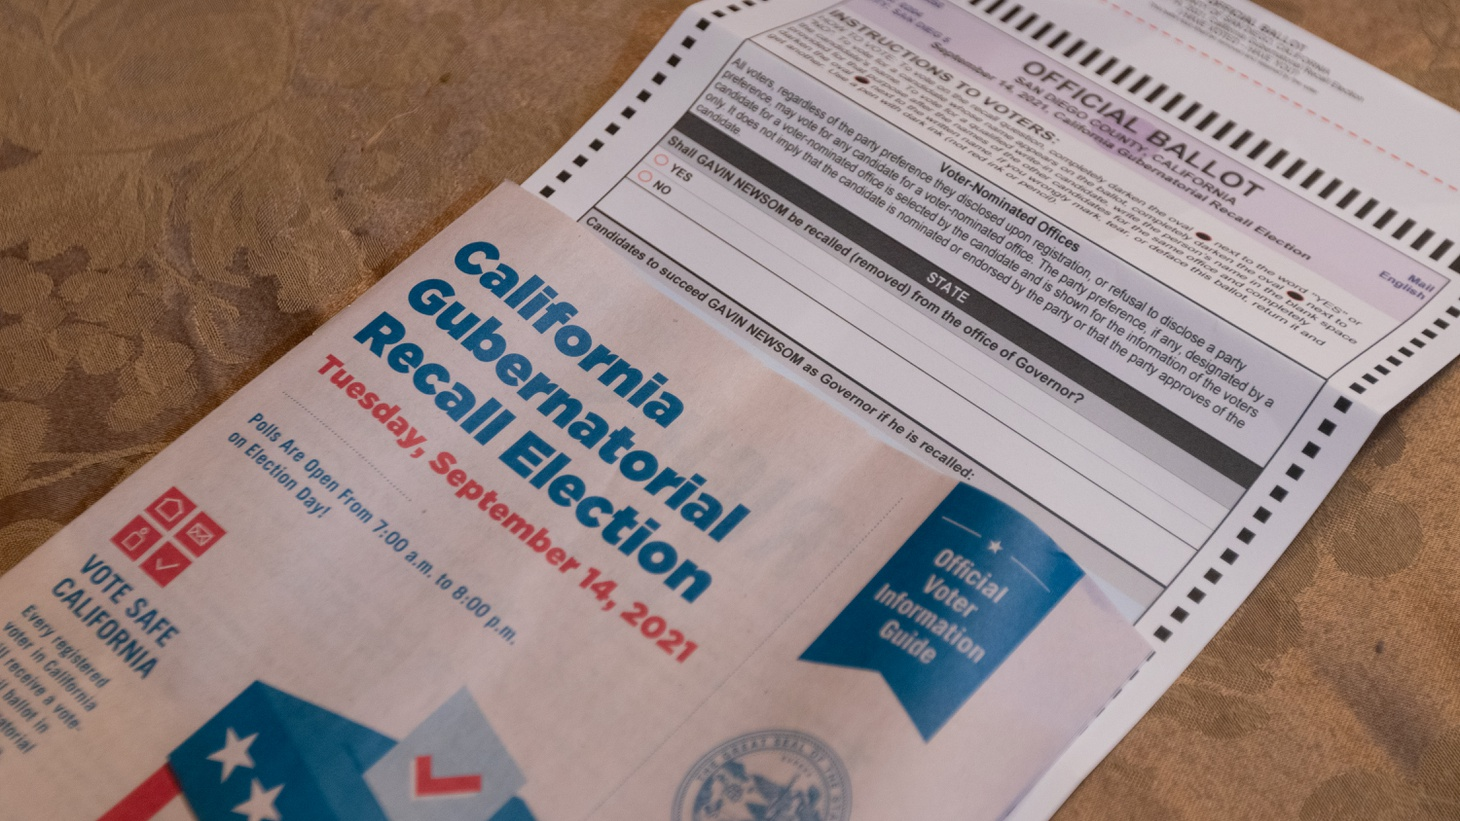 The official mail-in ballot and voter information guide for the 2021 California Gubernatorial Recall Election sits inside a home in San Diego, California on Monday, August 23, 2021.